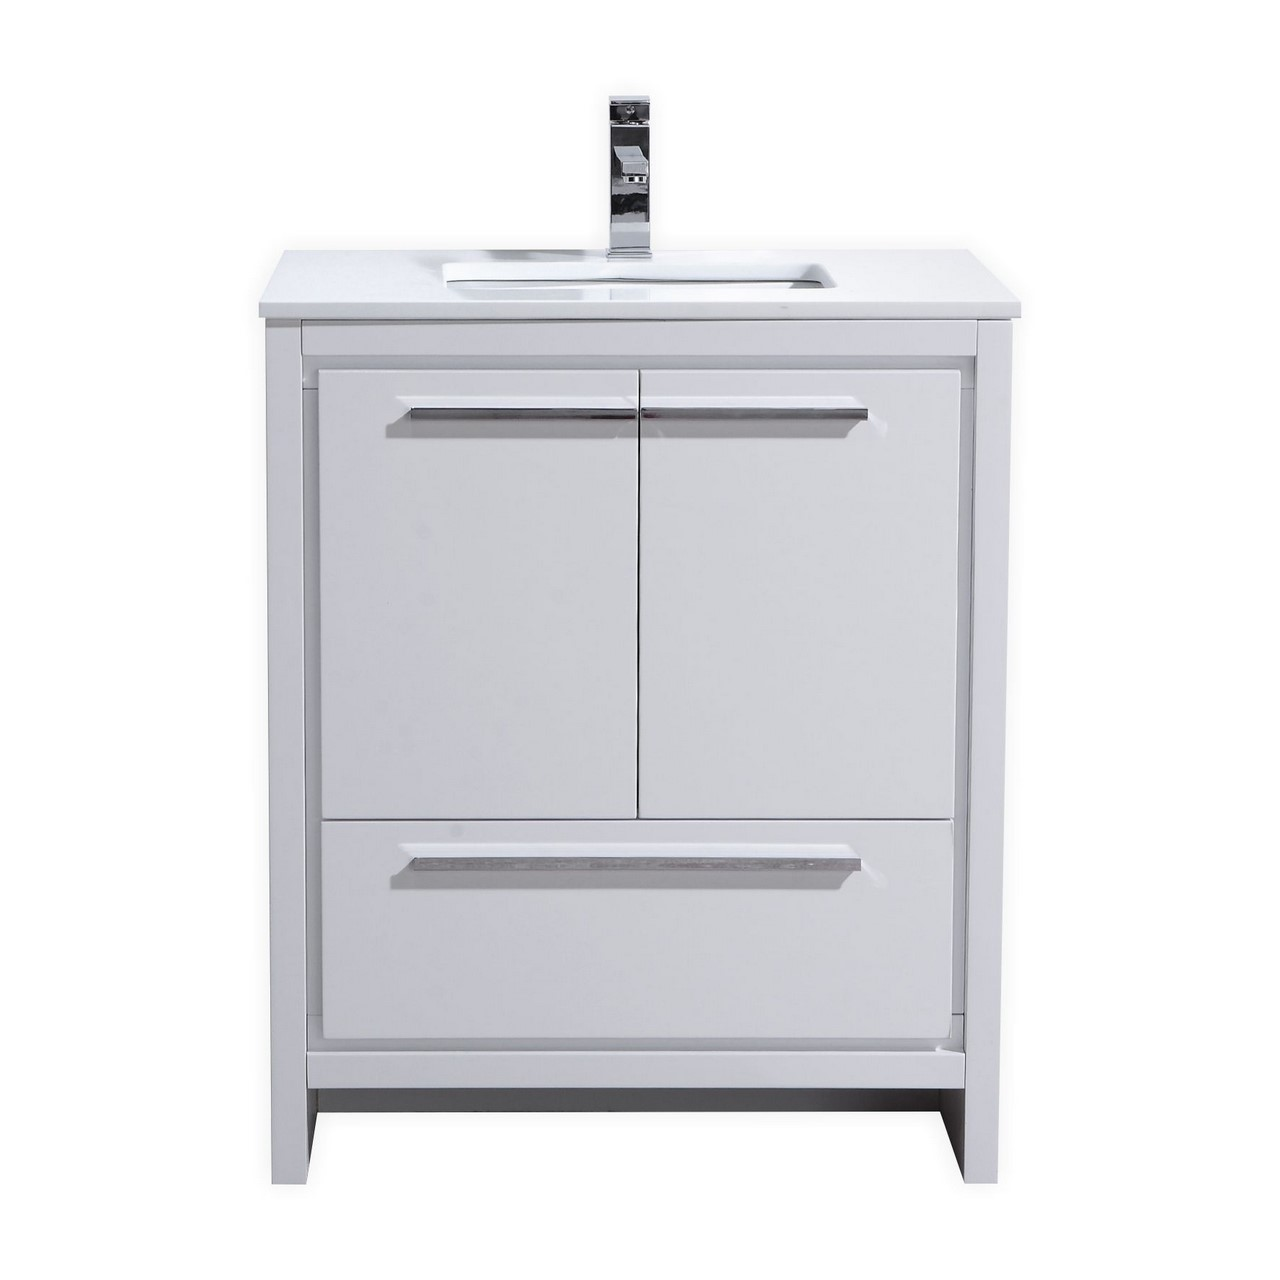 bathroom cabinet tops kubebath dolce 30 high gloss white modern bathroom vanity 10328